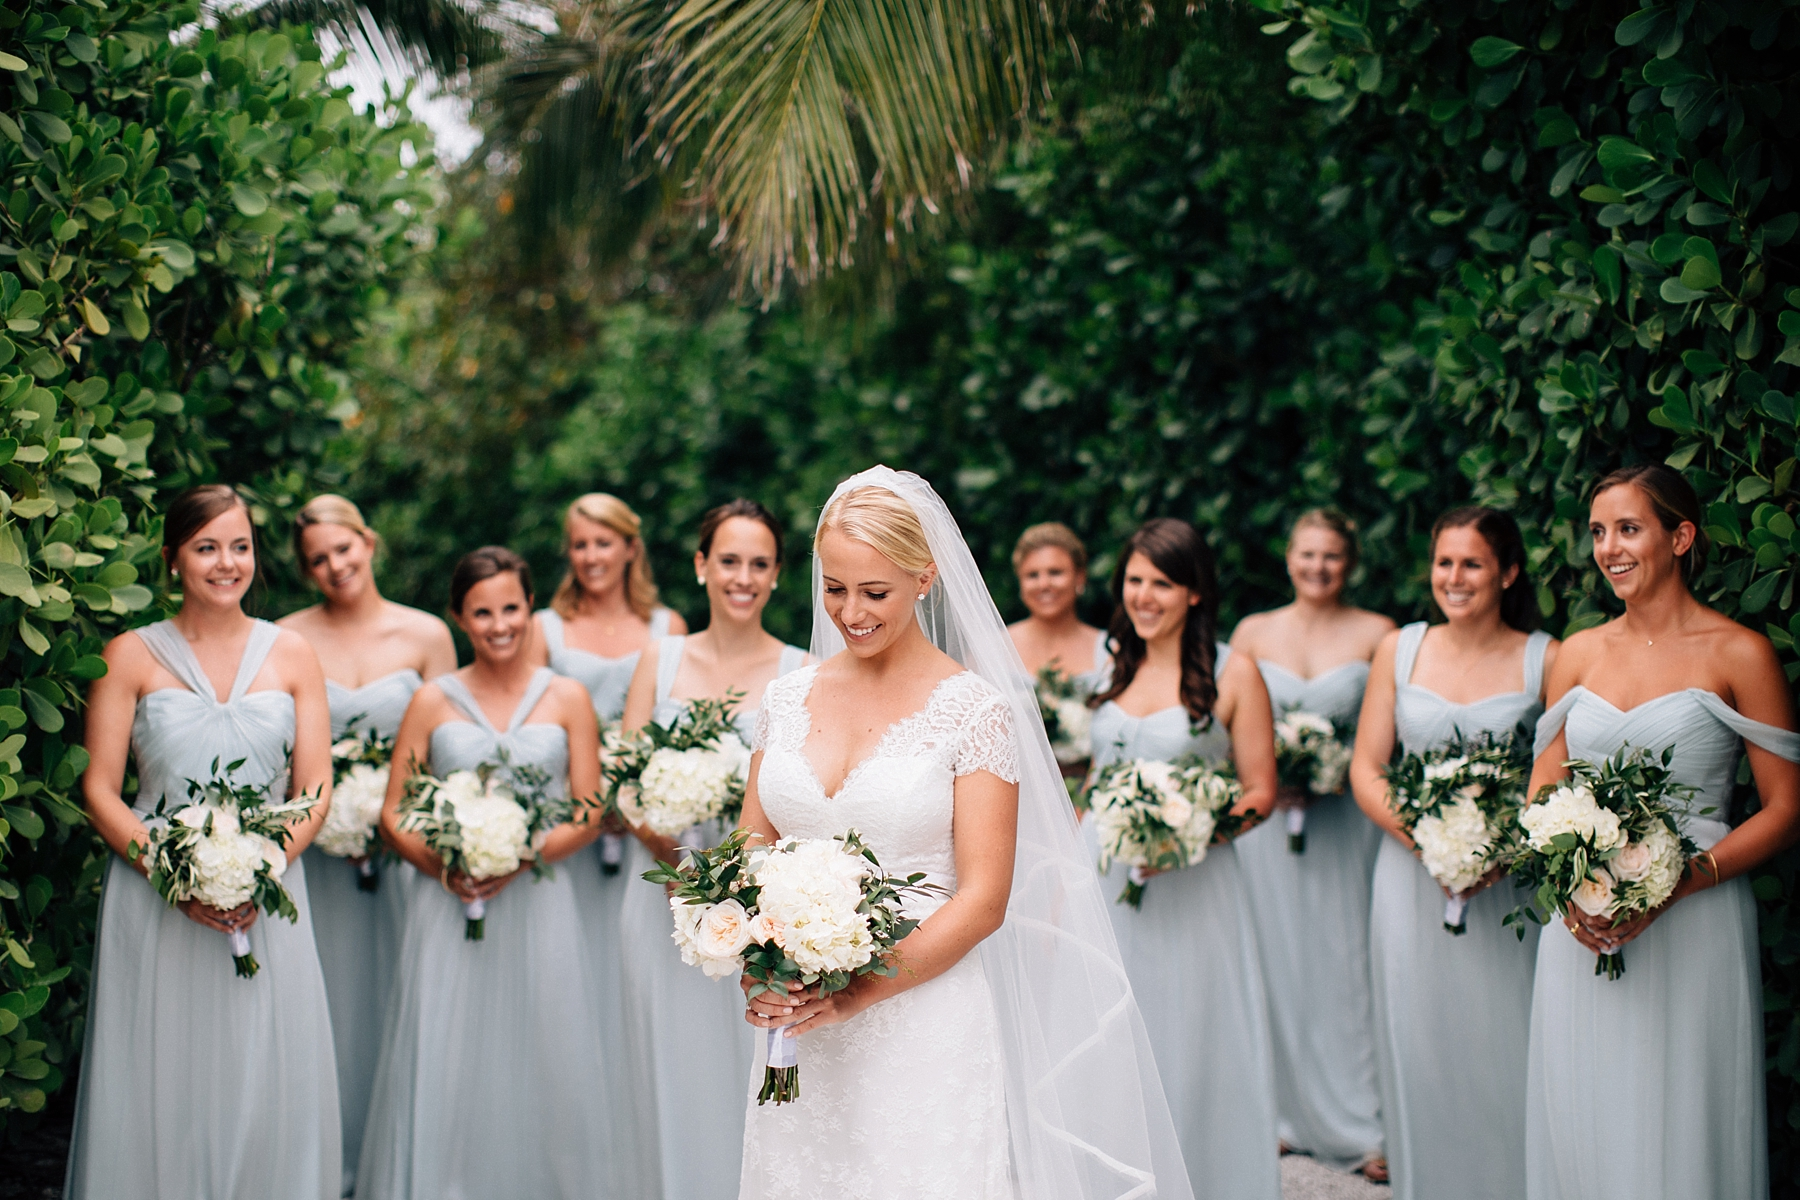 briland-wedding-photographer-harbour-island-bahamas_0013.jpg